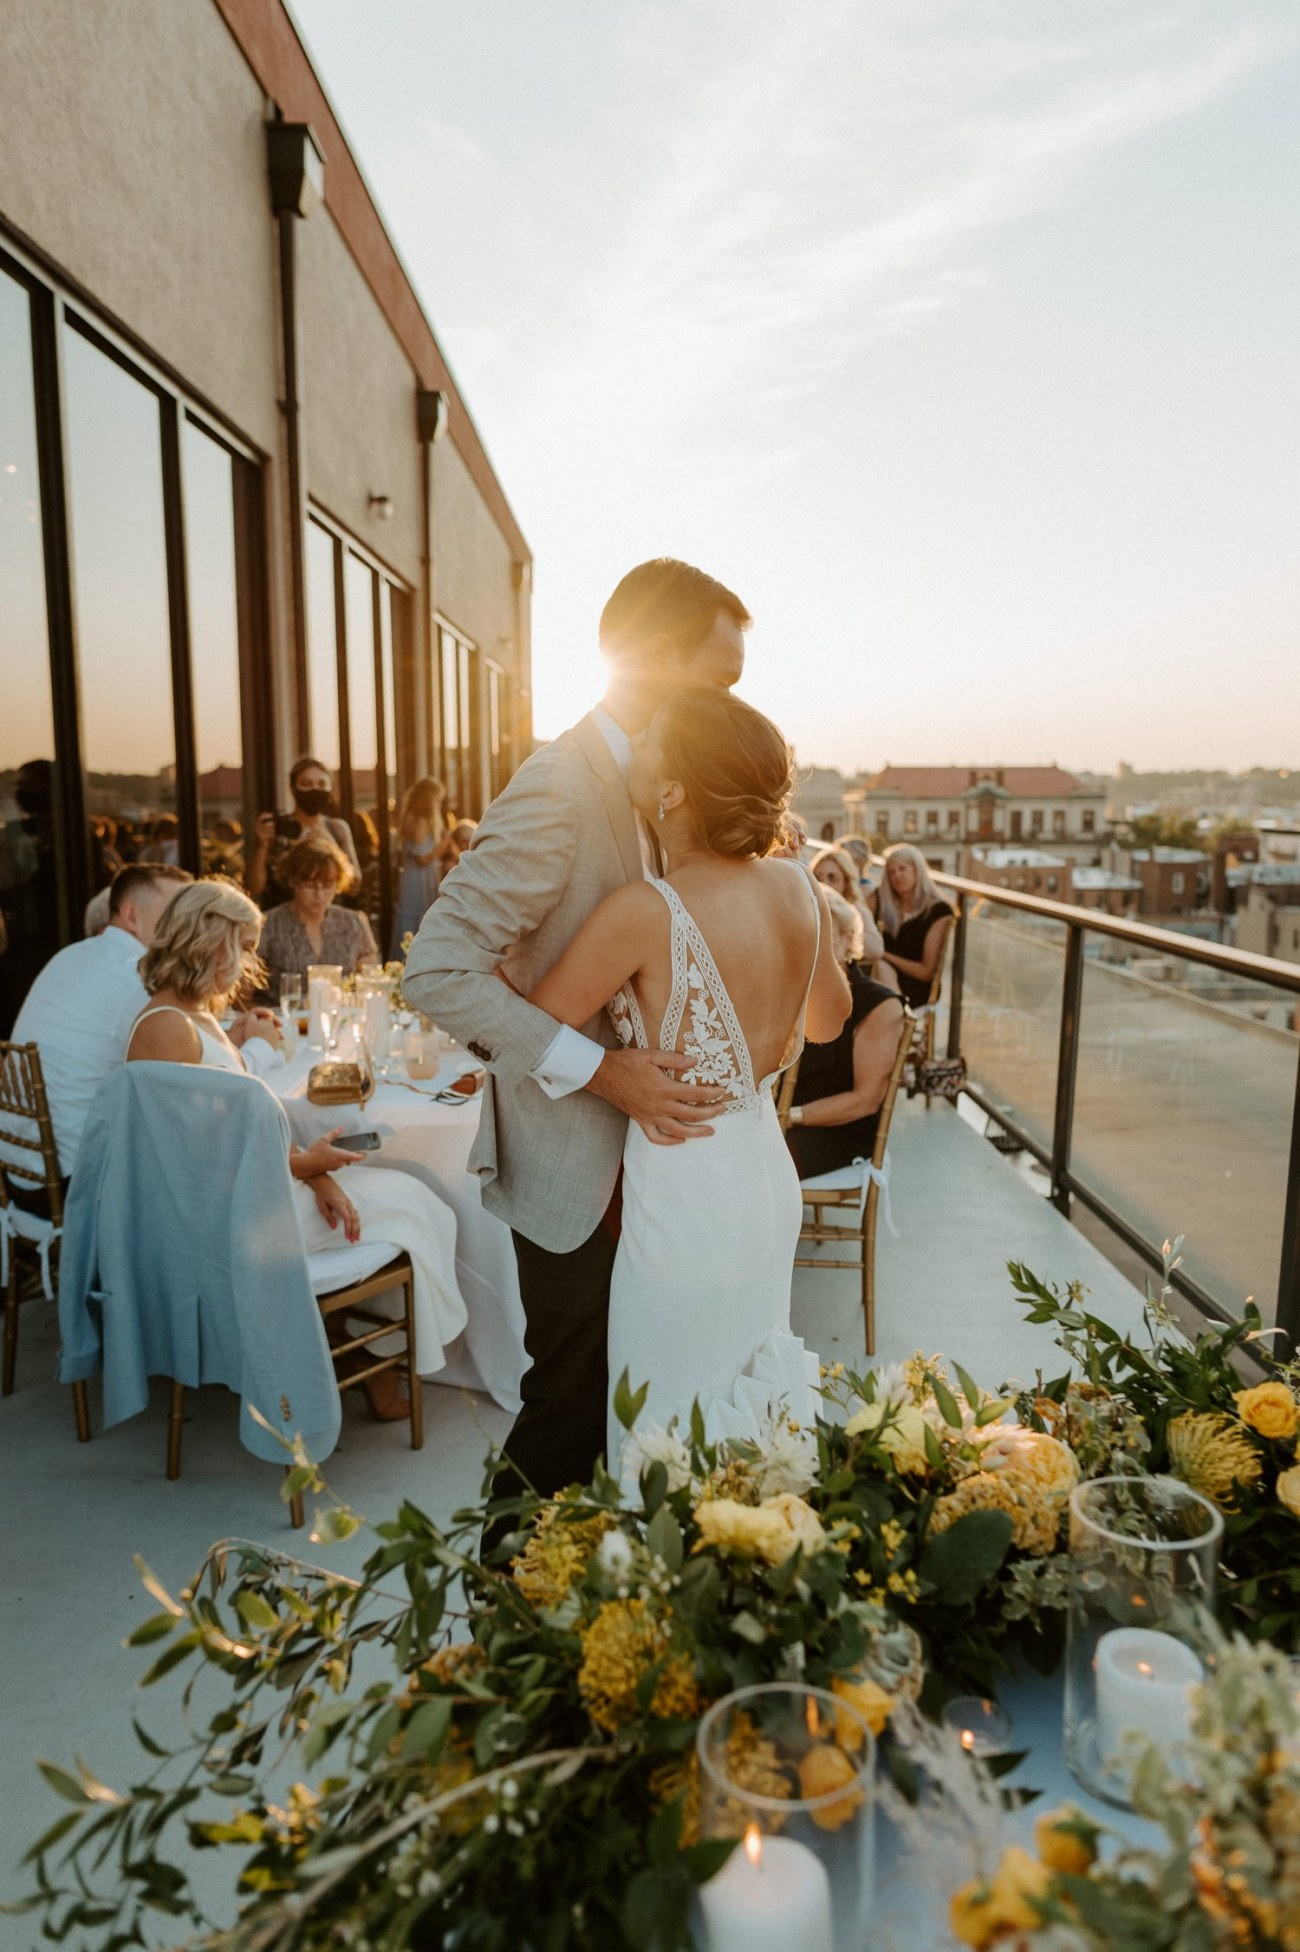 Antique Loft Hoboken Wedding New Jersey Wedding Photographer Anais Possamai Photography 084